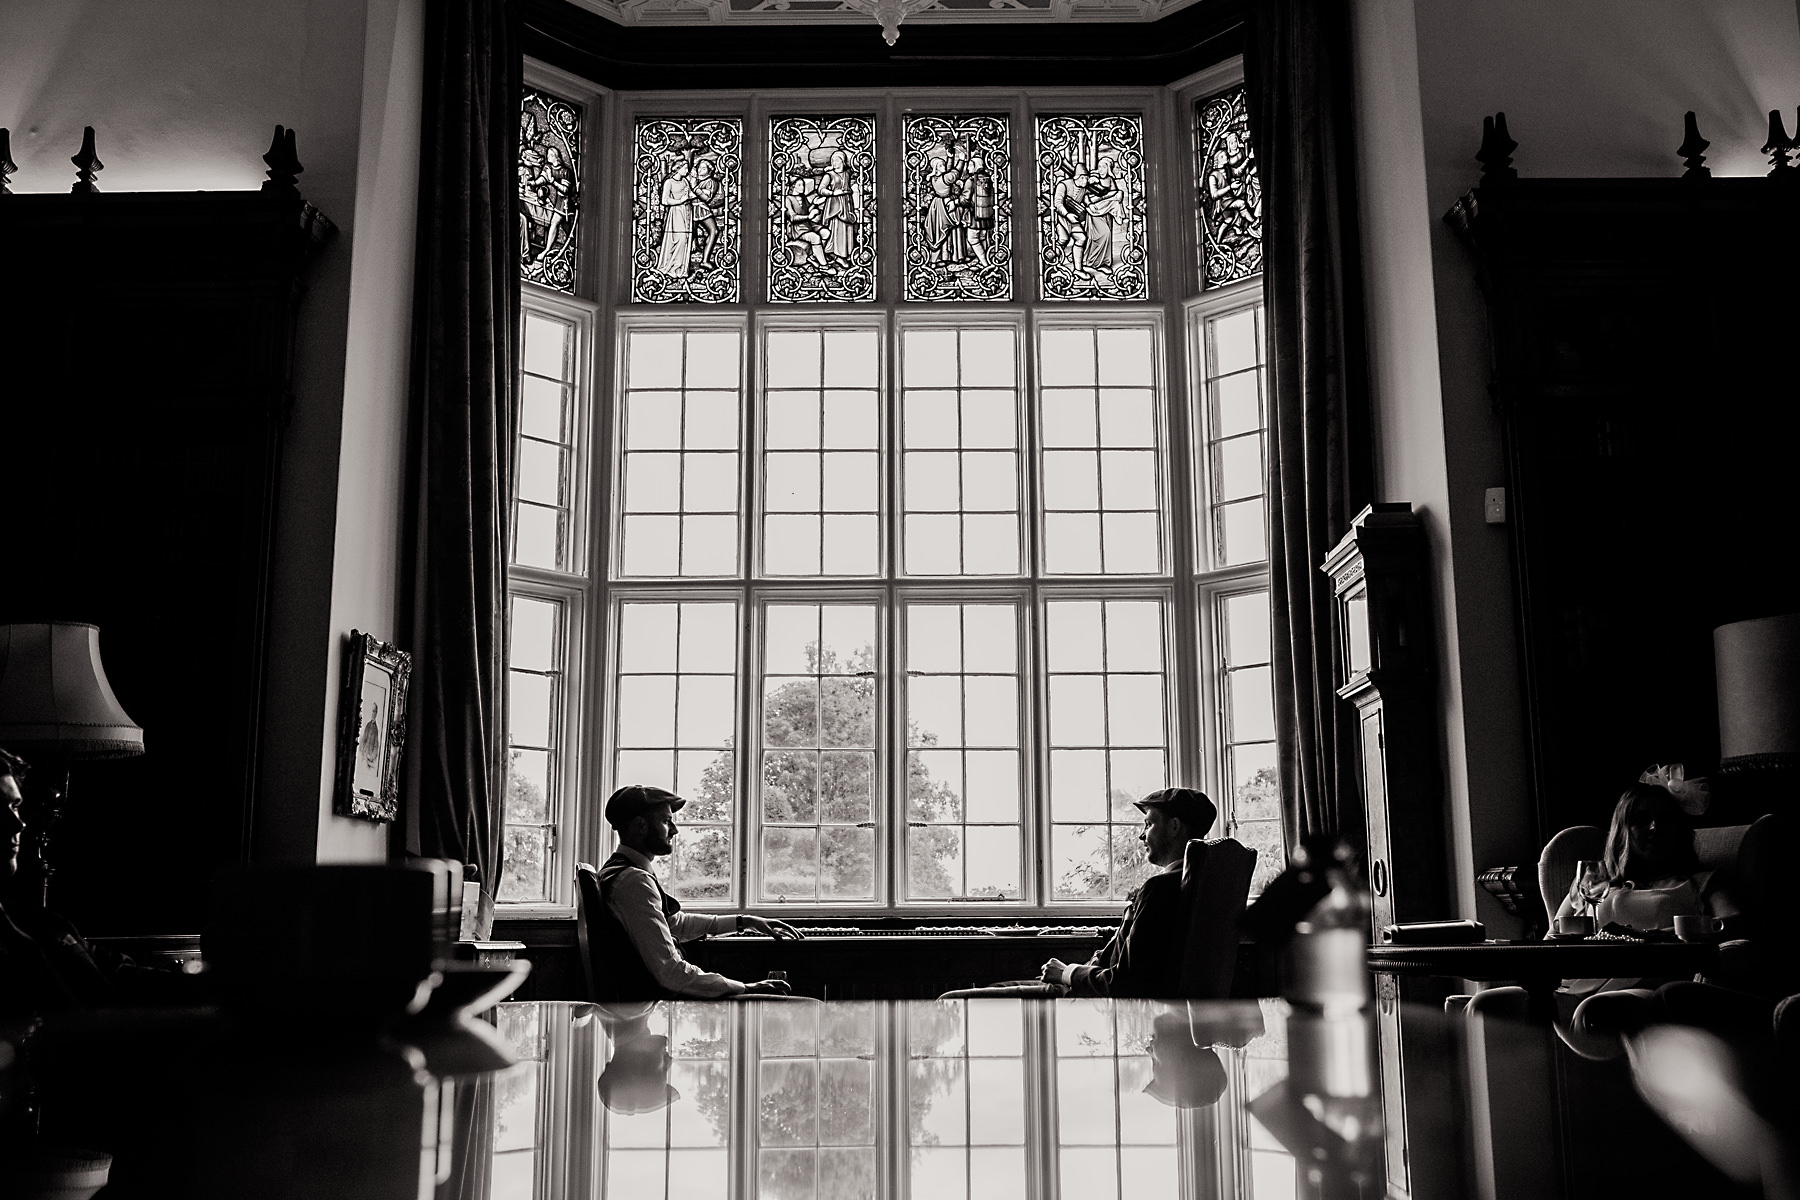 arley hall window portrait